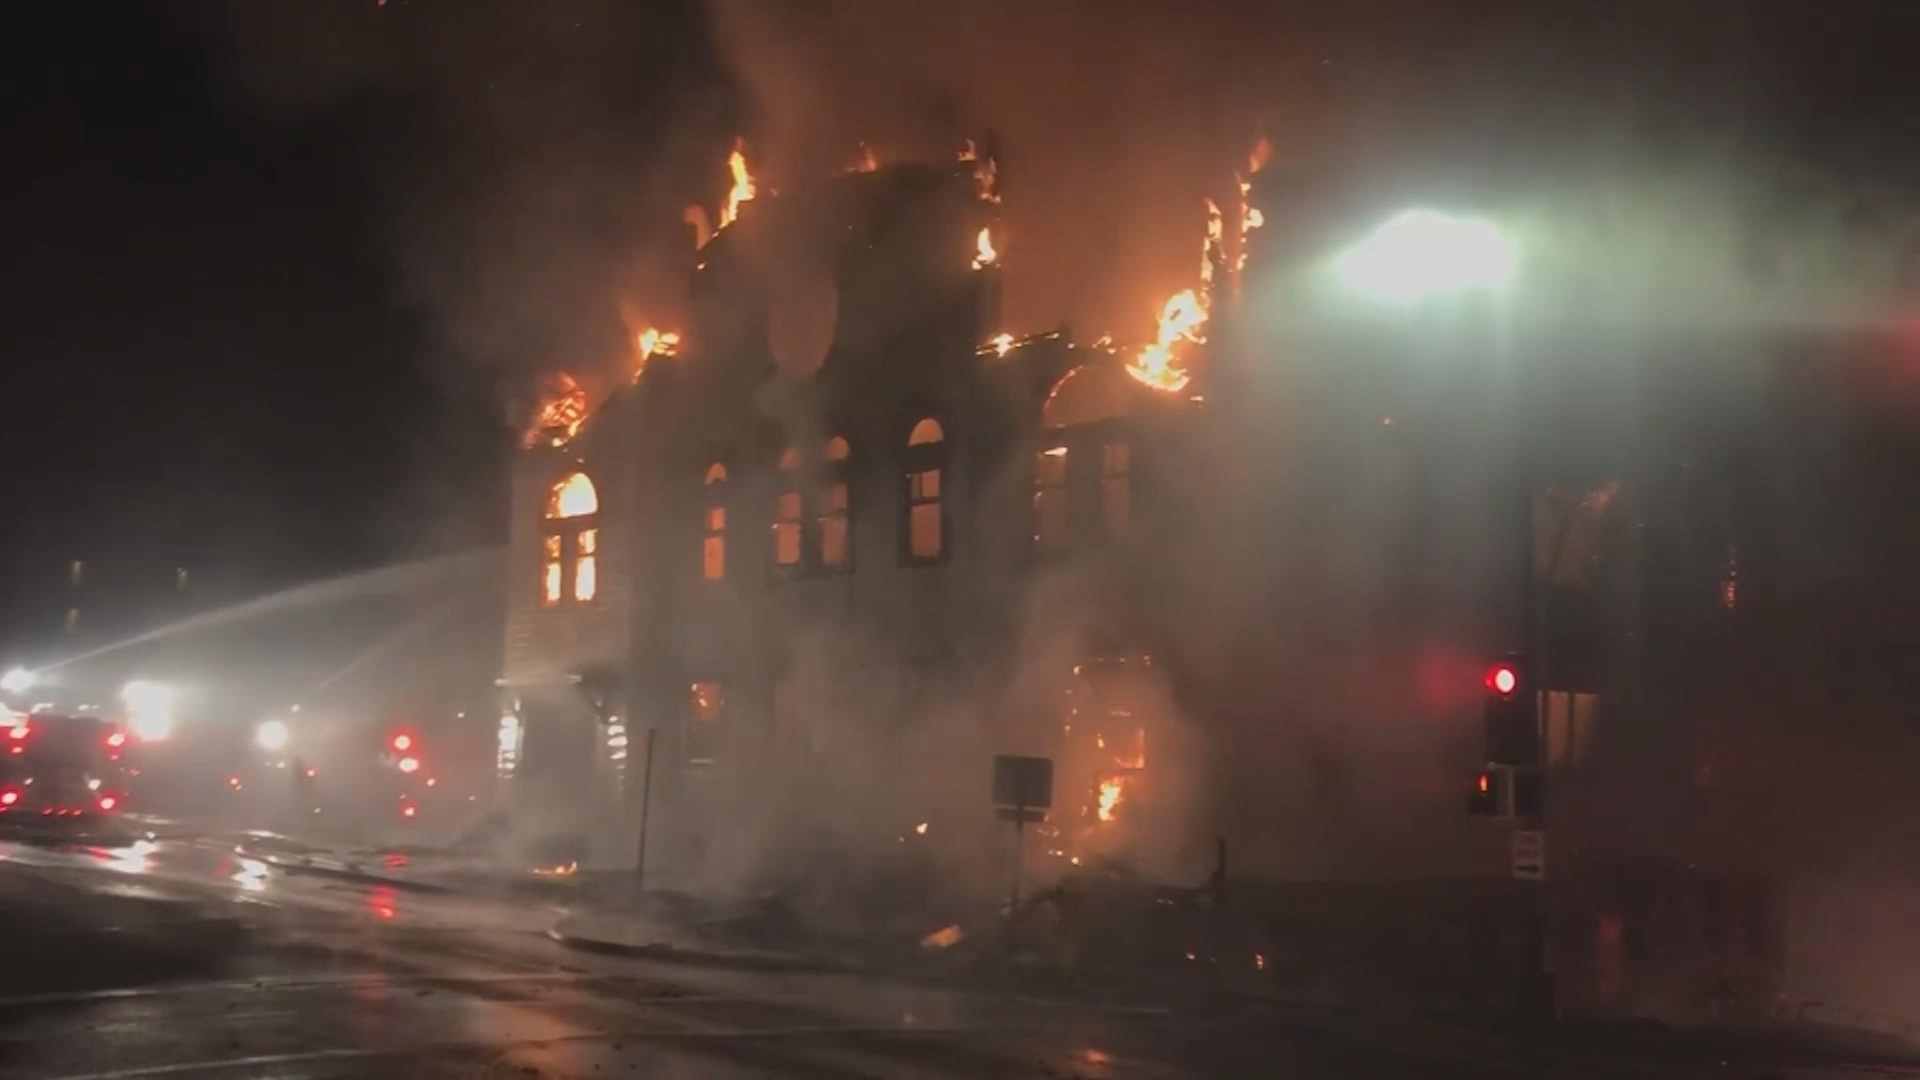 A 117-year-old synagogue burned to the ground. Police say they've charged a man with arson.